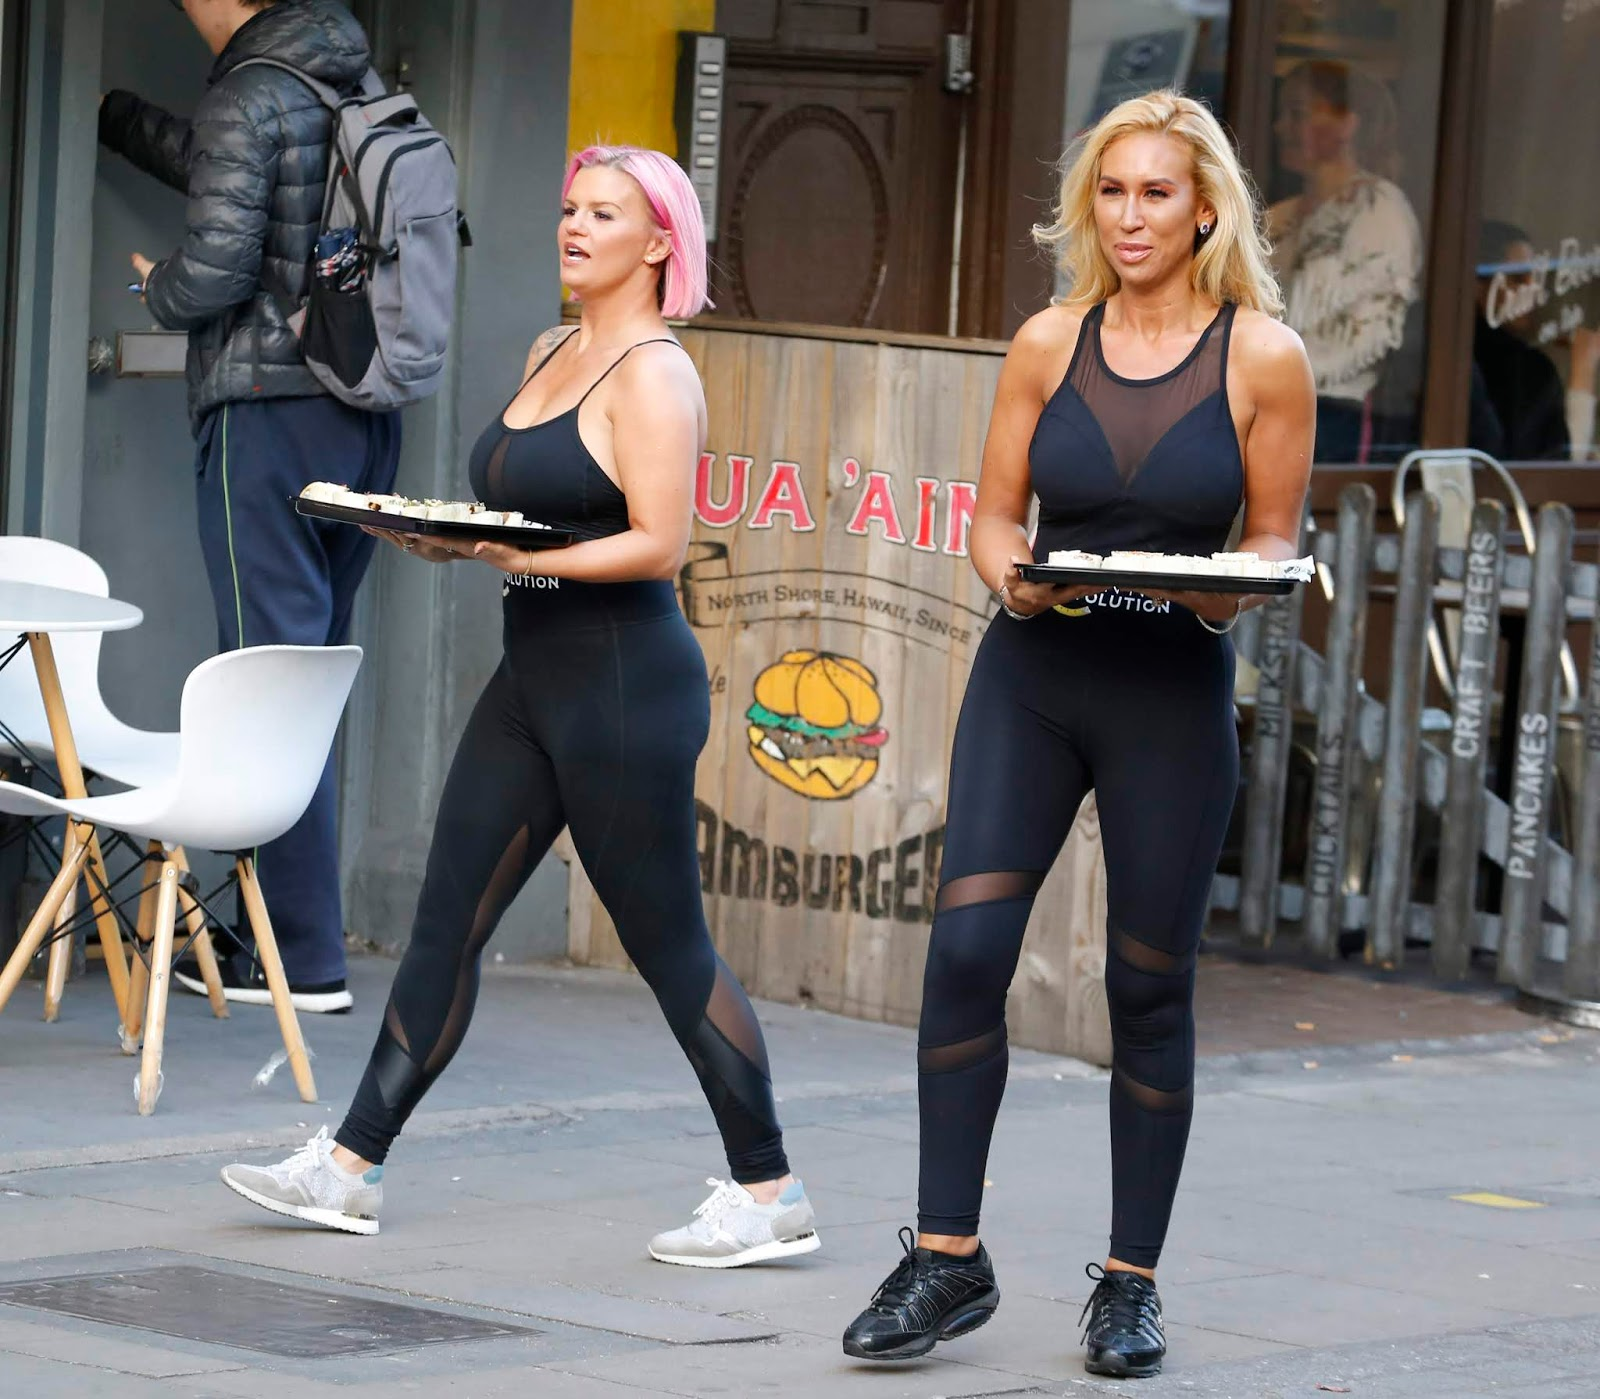 Kerry Katona Helps Amipka Pickston Launch Her New Weight Control Programme